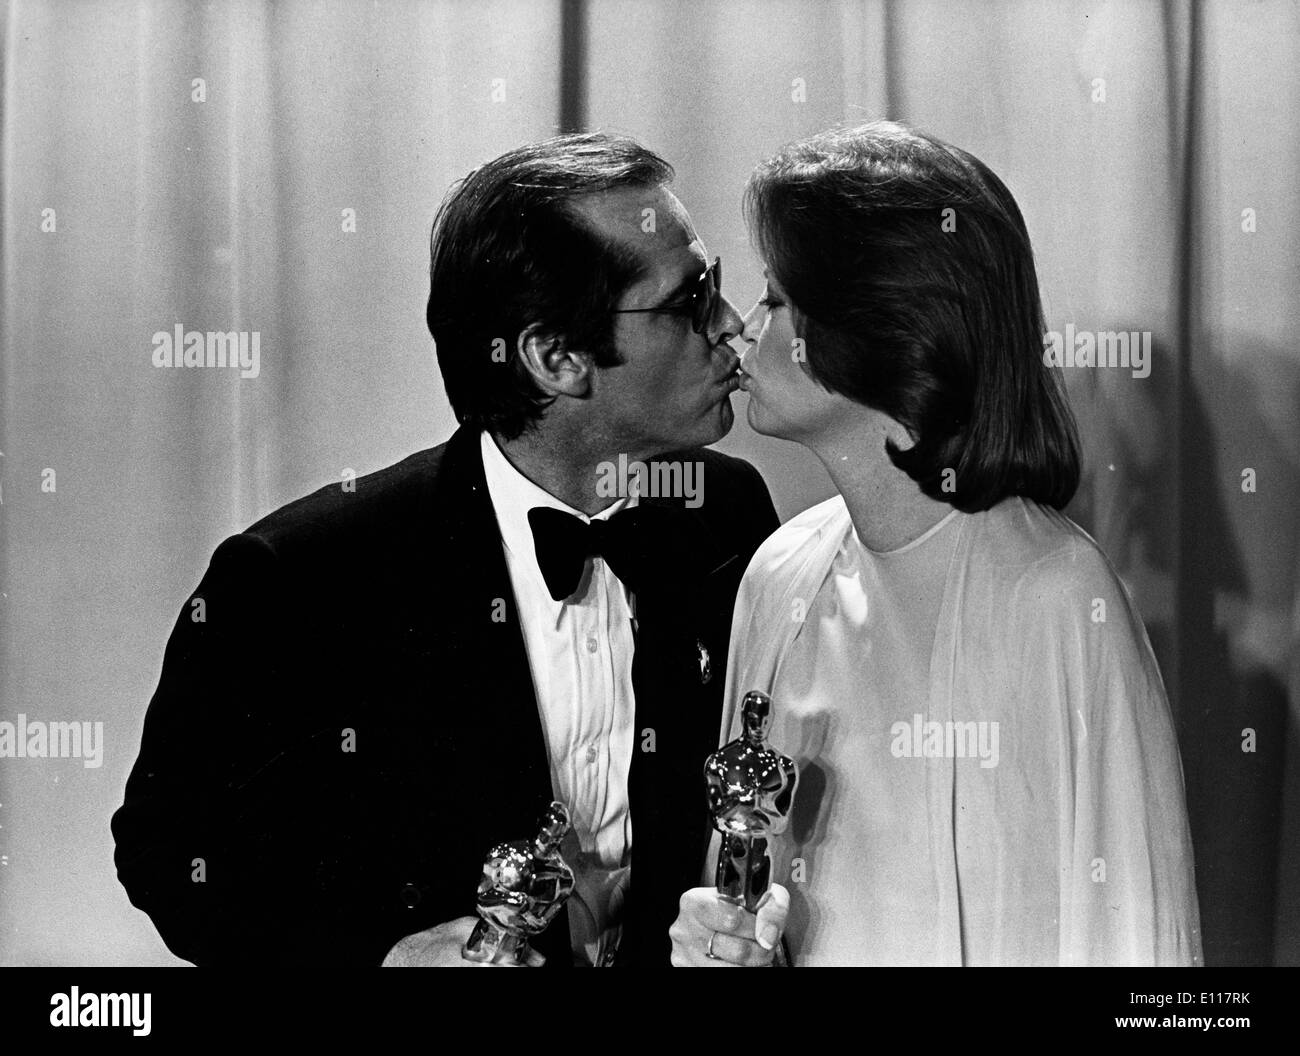 Jack Nicholson and Louis Fletcher win Oscars - Stock Image